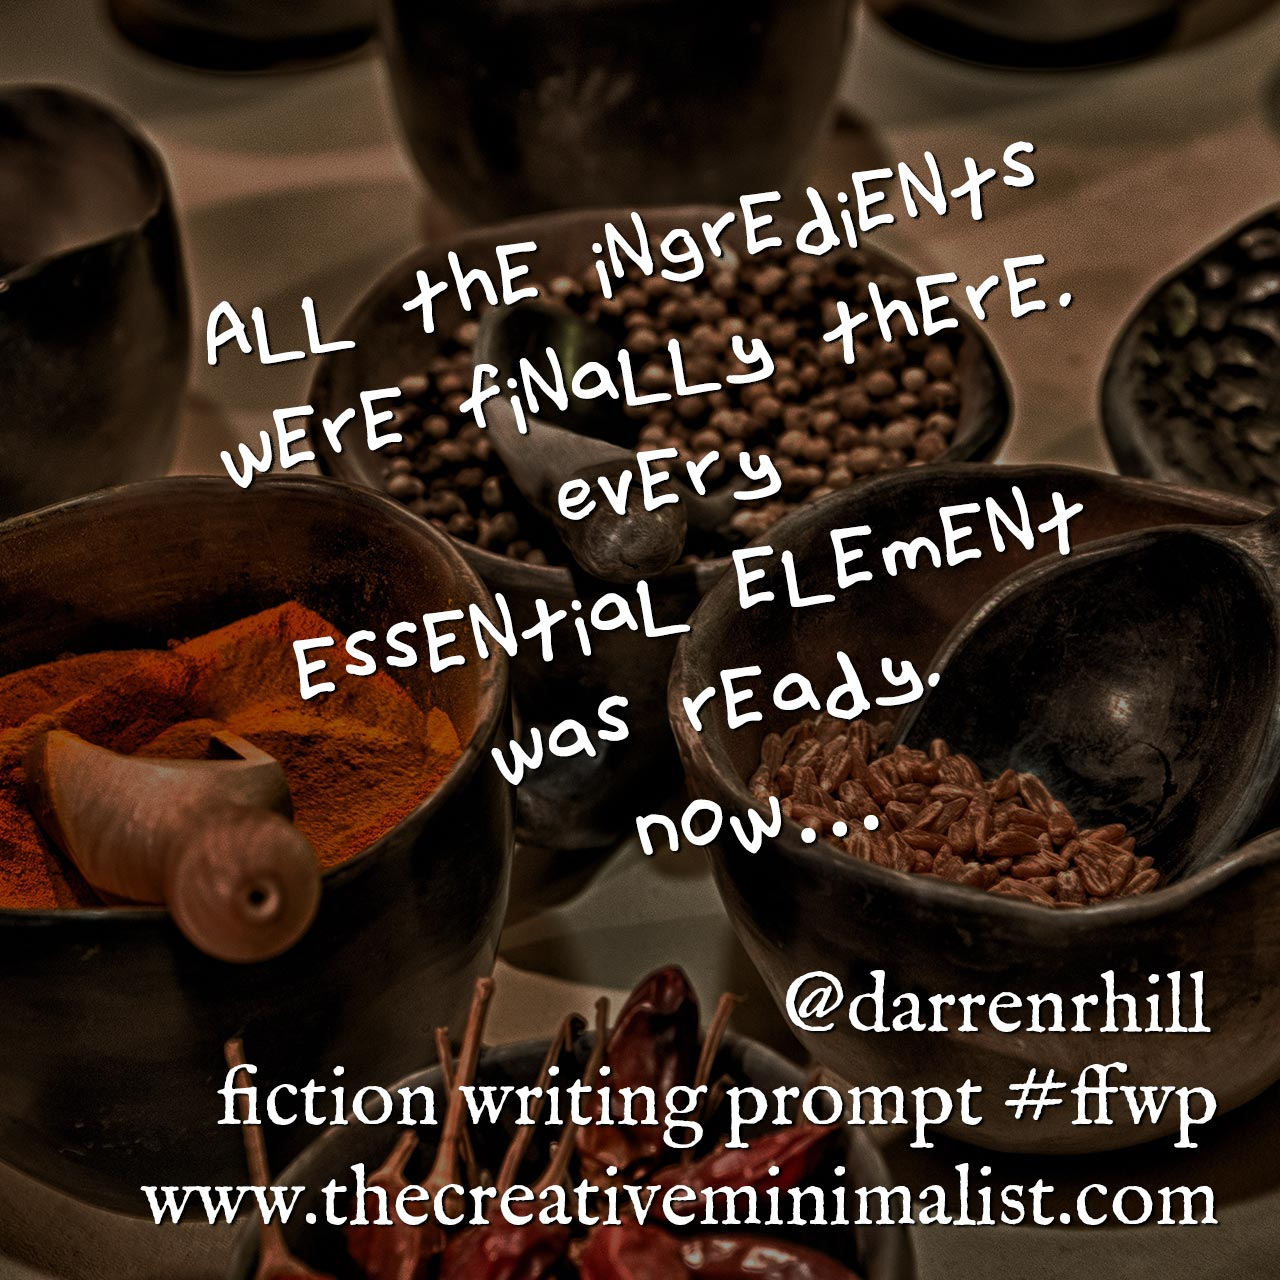 All the ingredients were finally there. Every essential element was ready. Now… Friday Fiction Writing Prompt